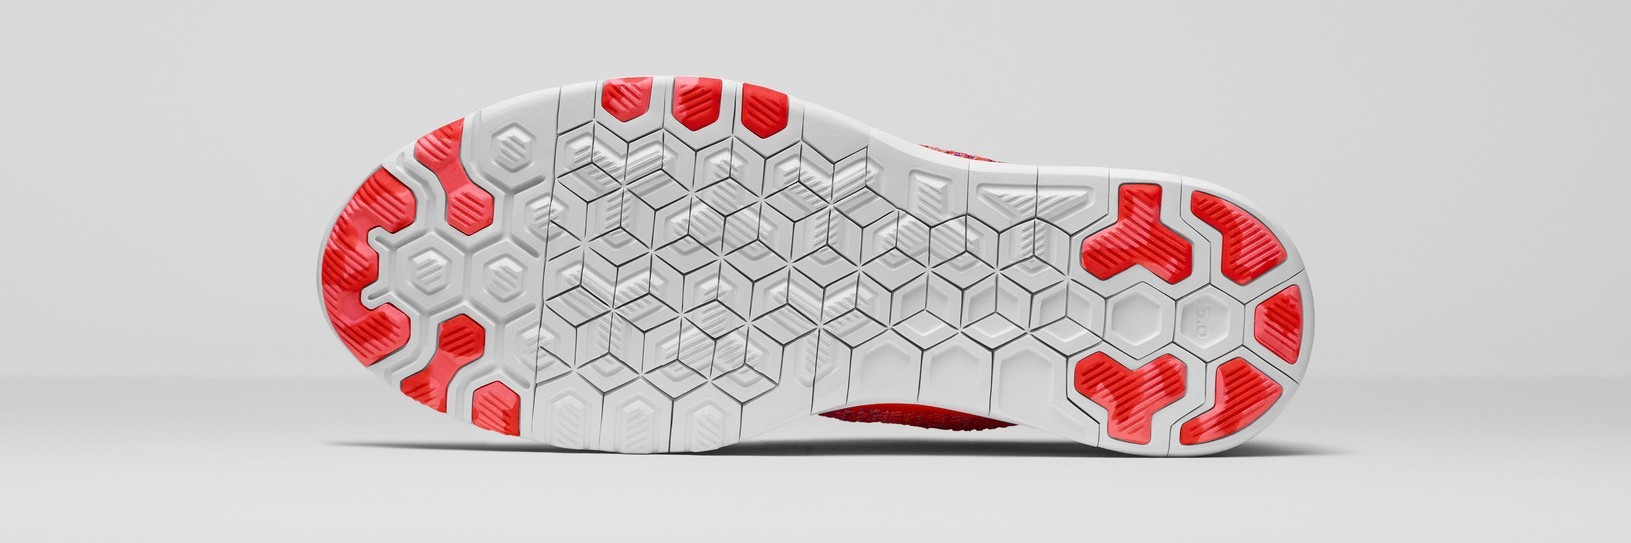 Nike Free Tri Fit nyhed